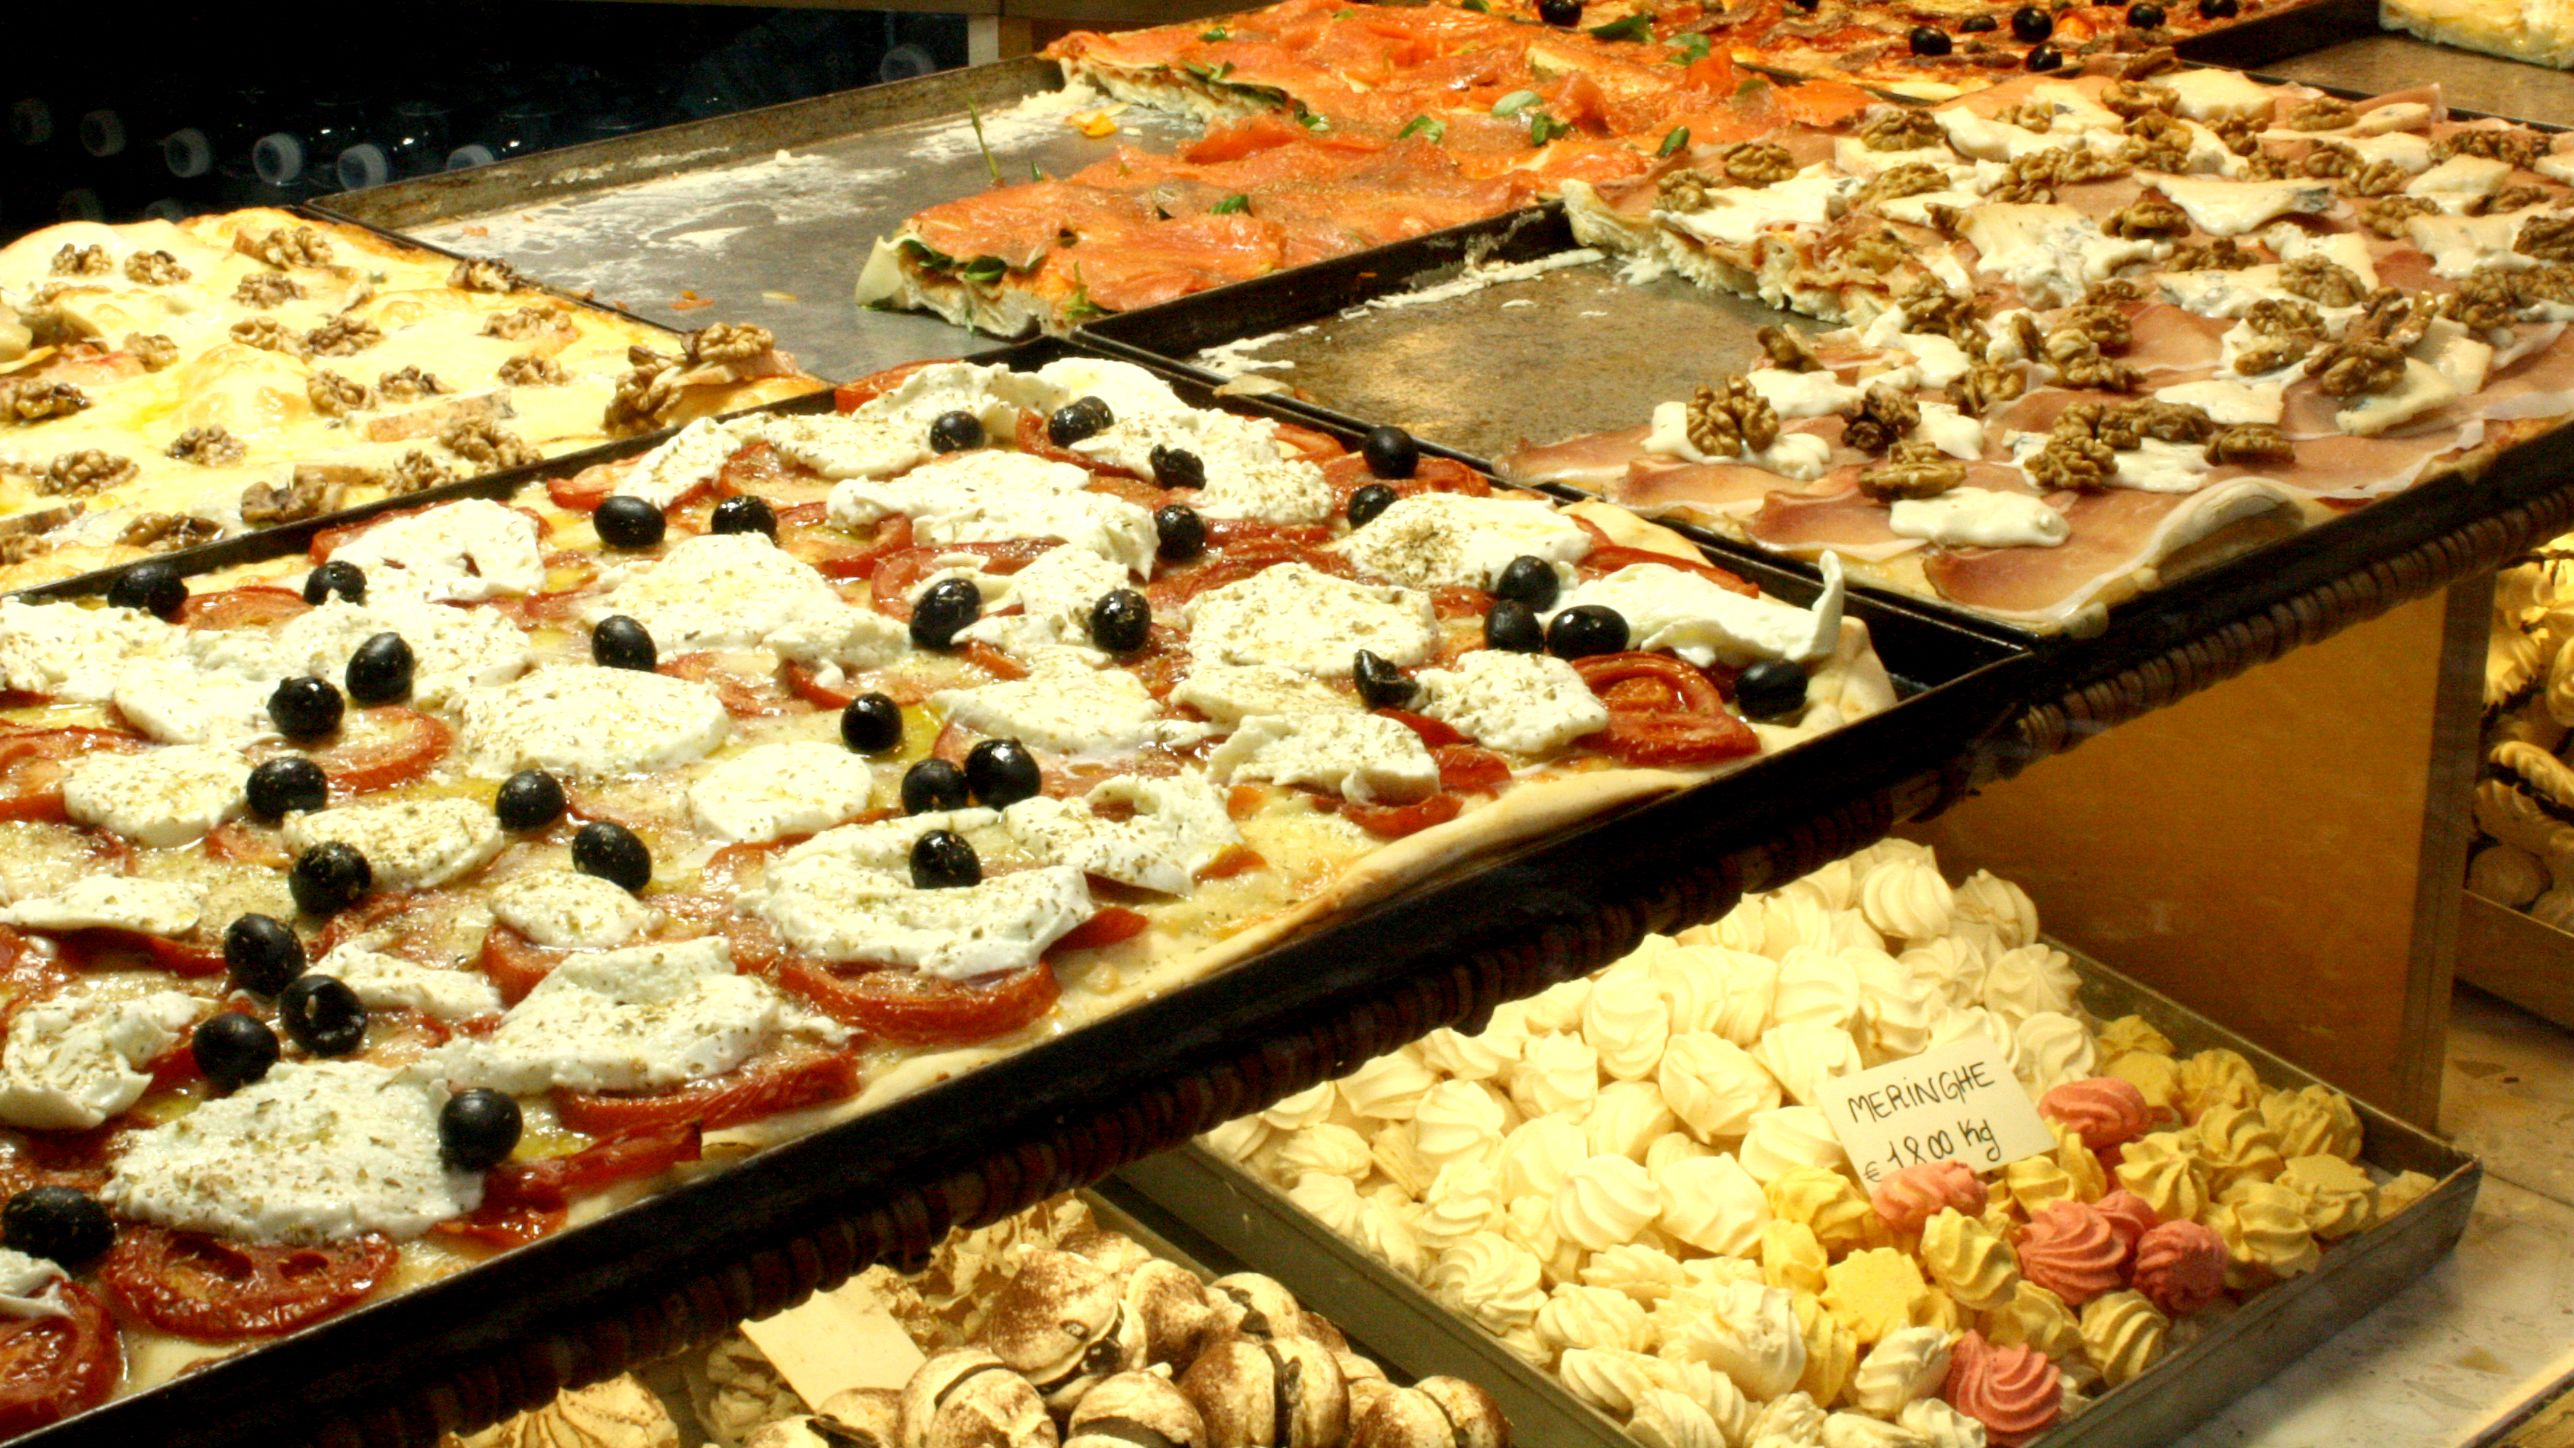 Pizza and sweets in a Milan bakery